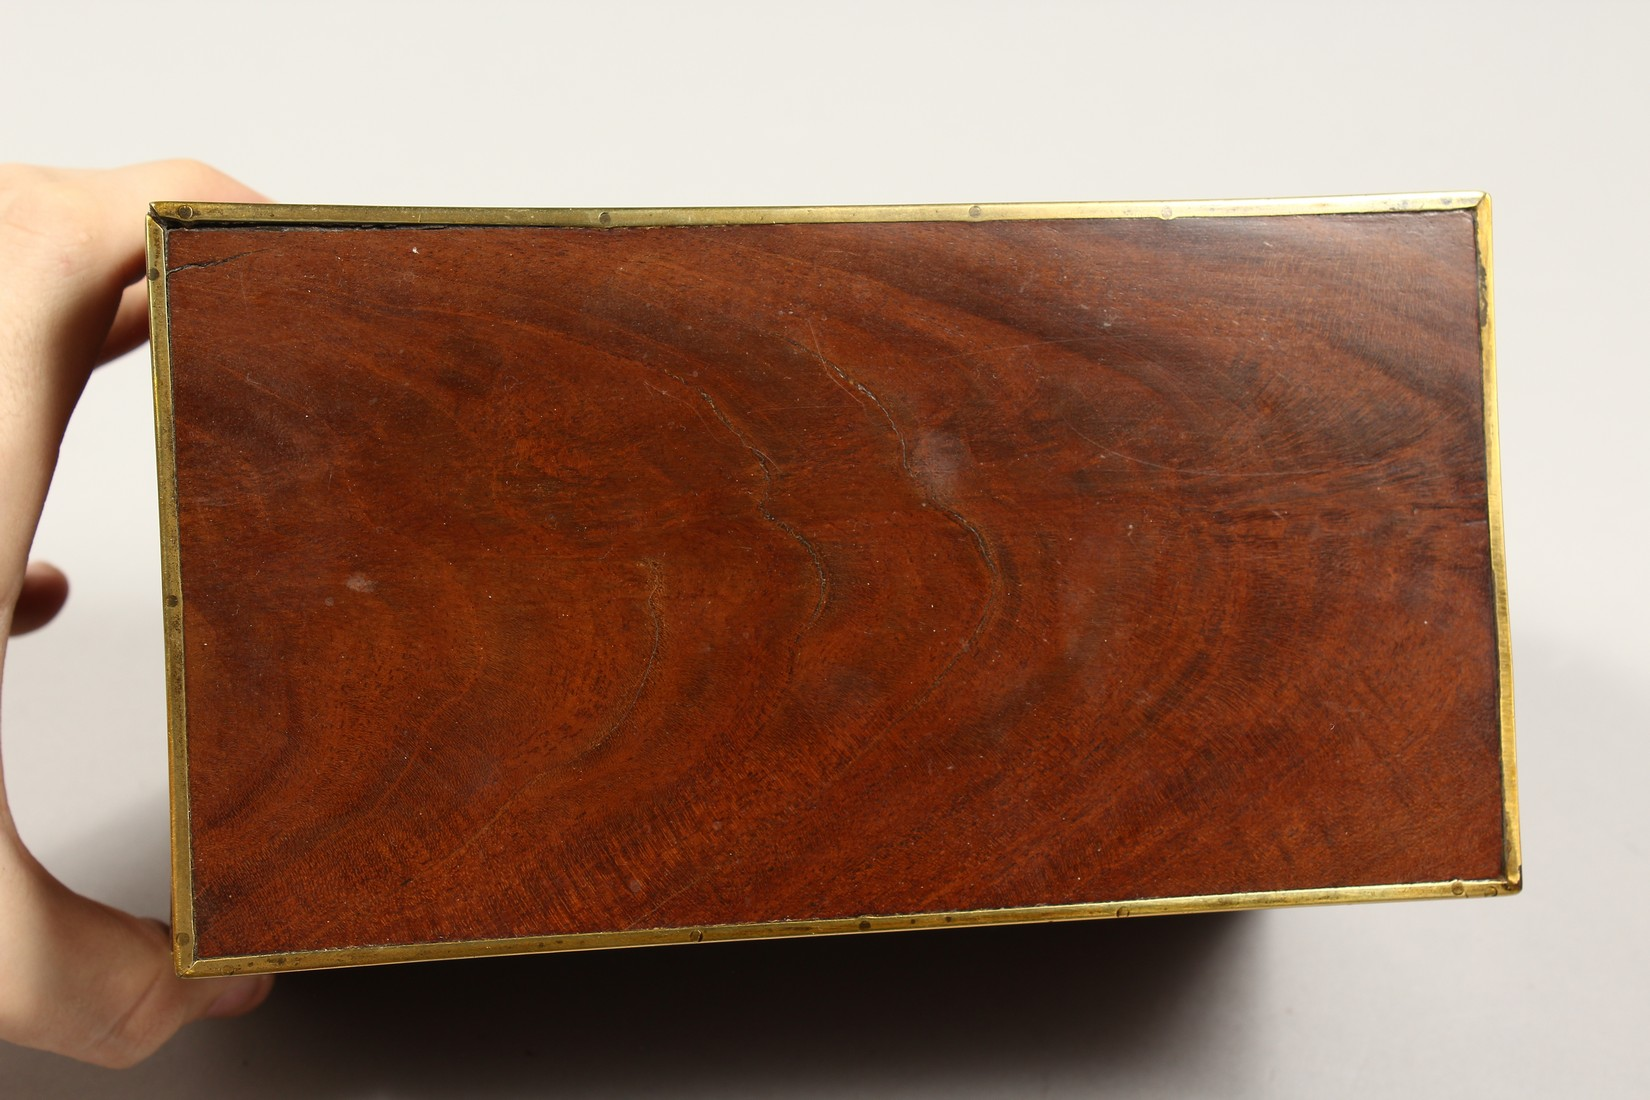 A REGENCY MAHOGANY TWO DIVISION TEA CADDY with brass stringing. 8ins long - Image 5 of 7